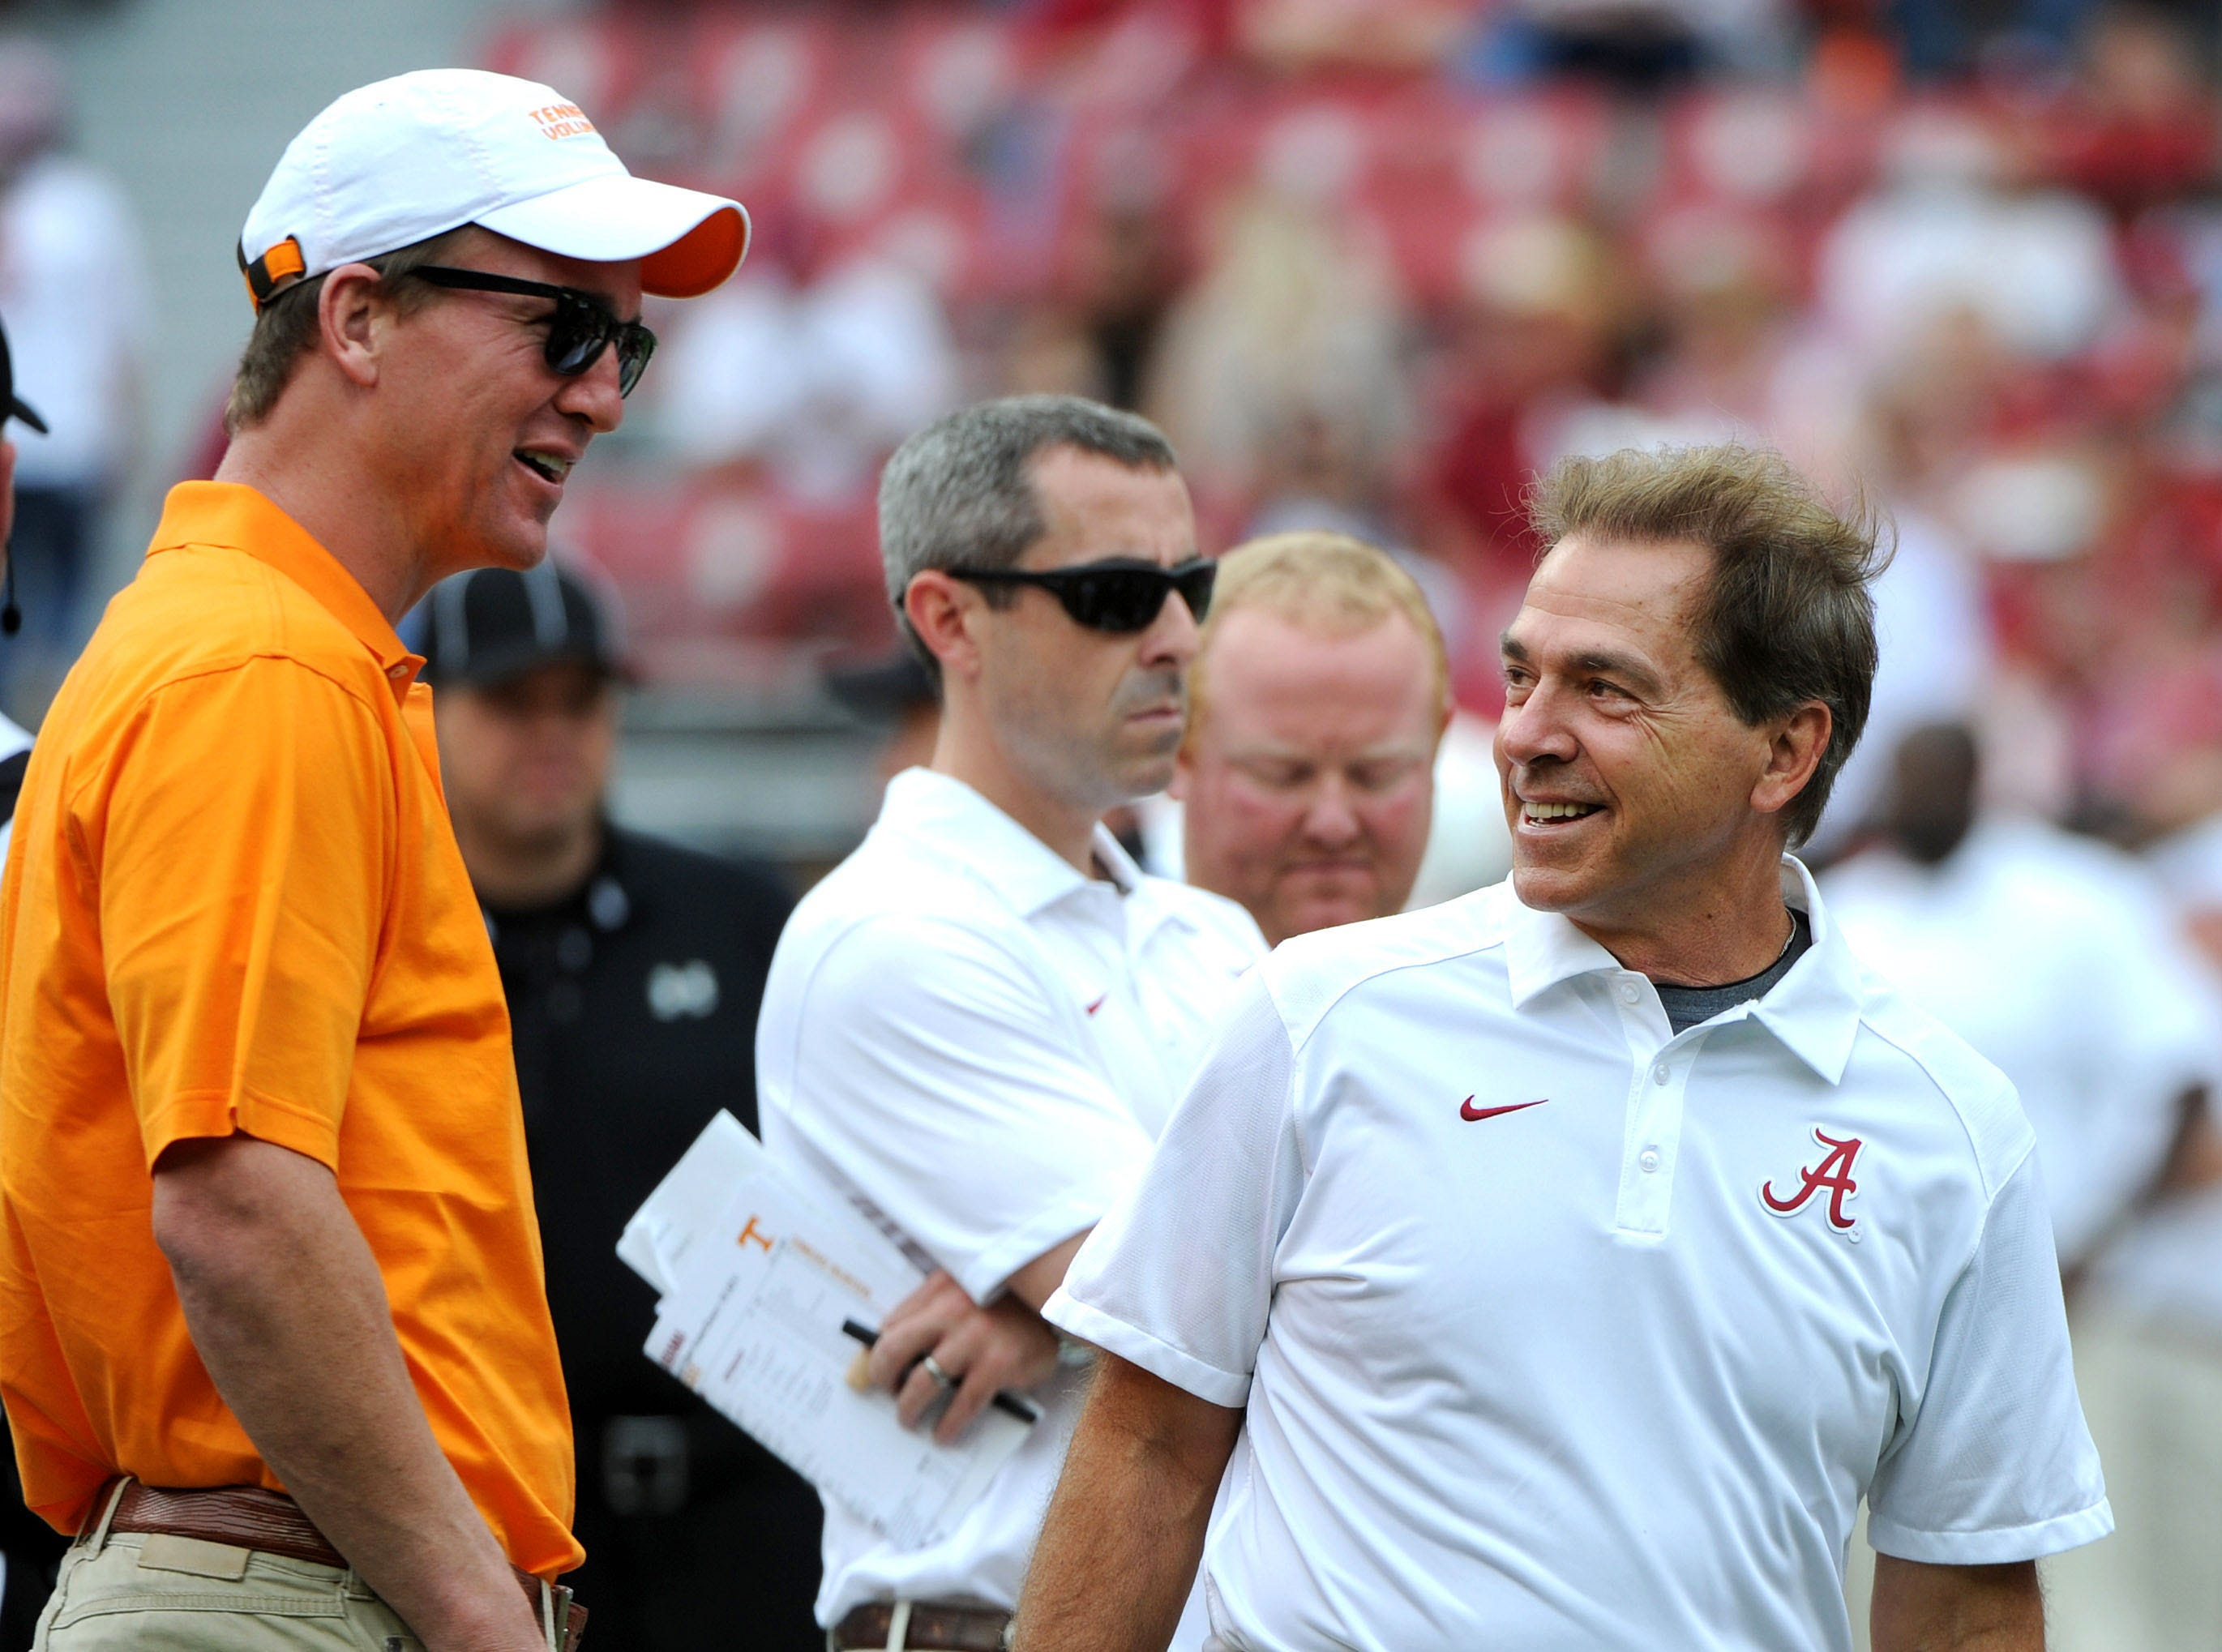 Alabama head coach Nick Saban and Peyton Manning chat midfield before the Tennessee's game against Alabama at Bryant-Denny Stadium in Tuscaloosa, Ala. Saturday, Oct. 24, 2015.